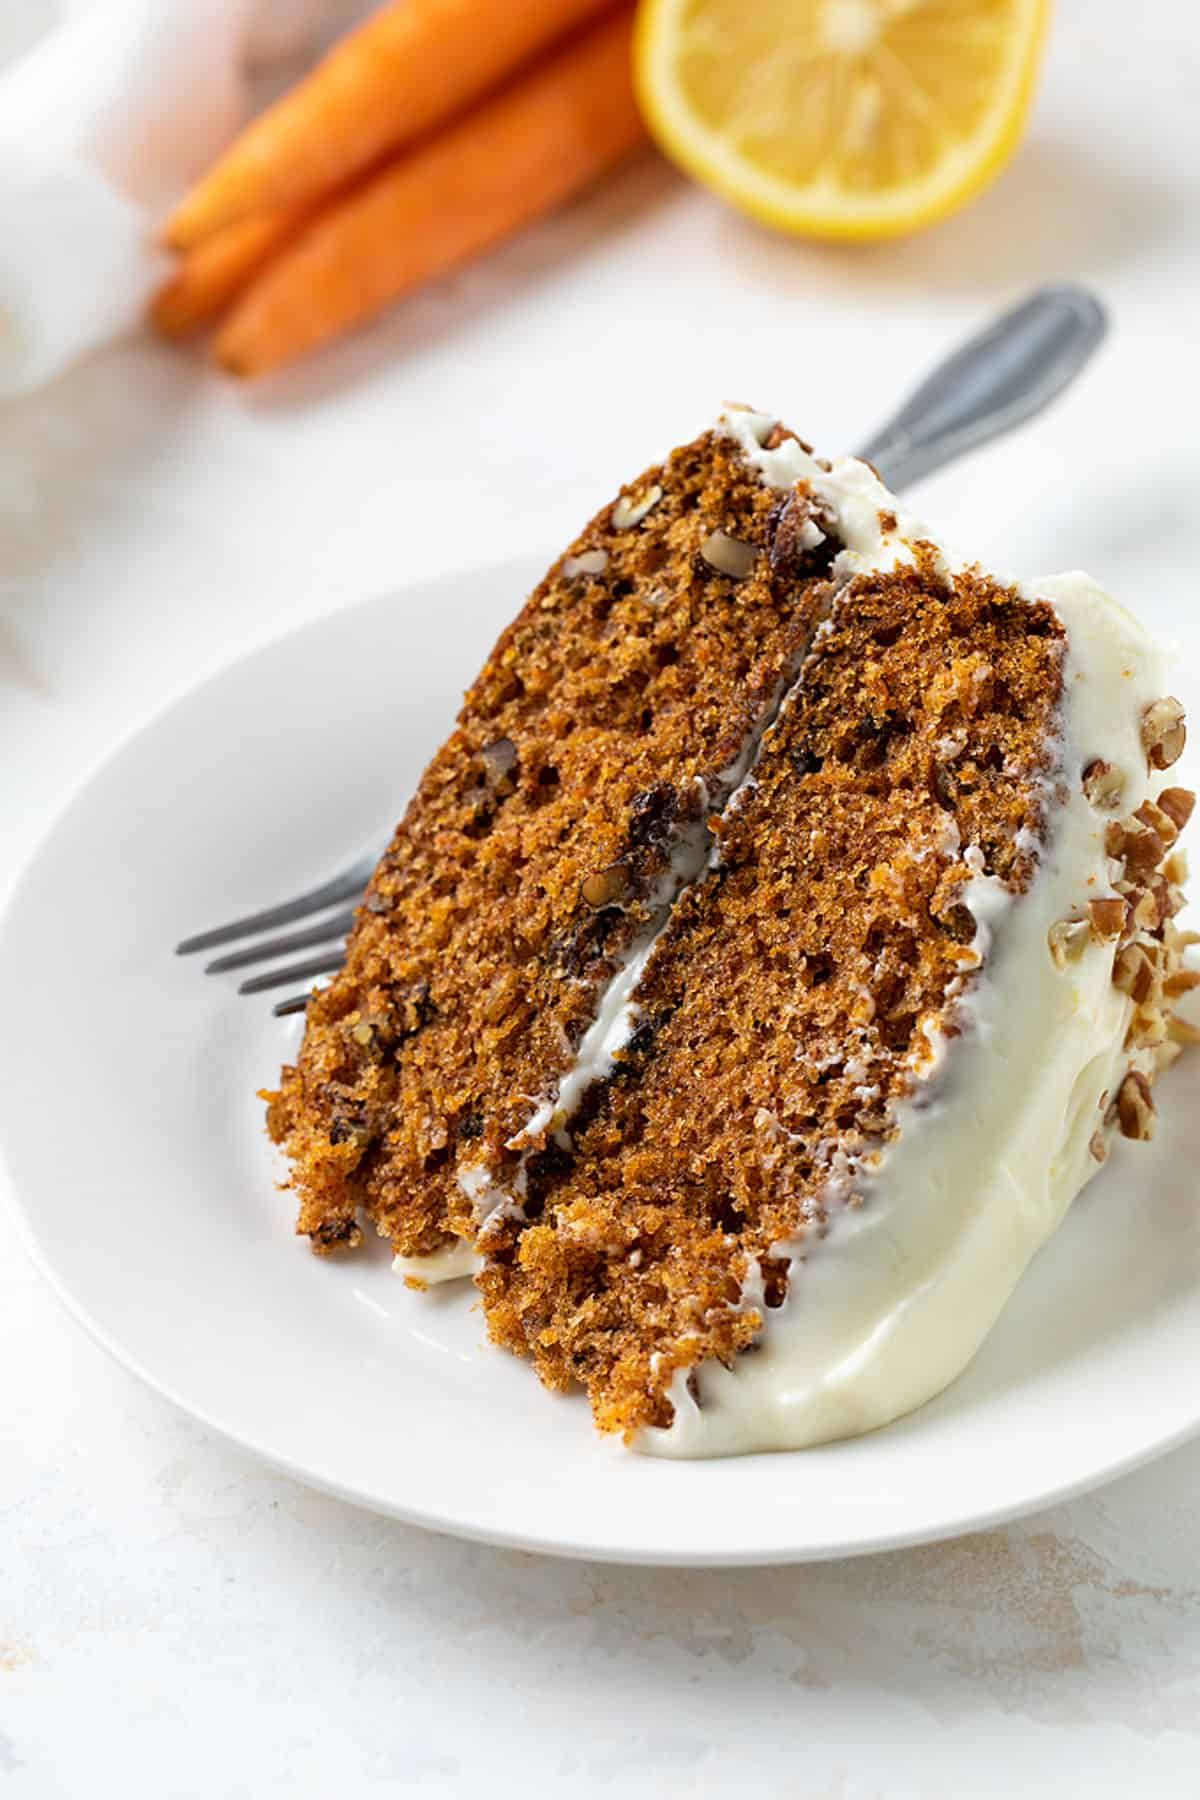 Carrot Cake with Lemon Cream Cheese Frosting | The Blond Cook #lemoncreamcheesefrosting